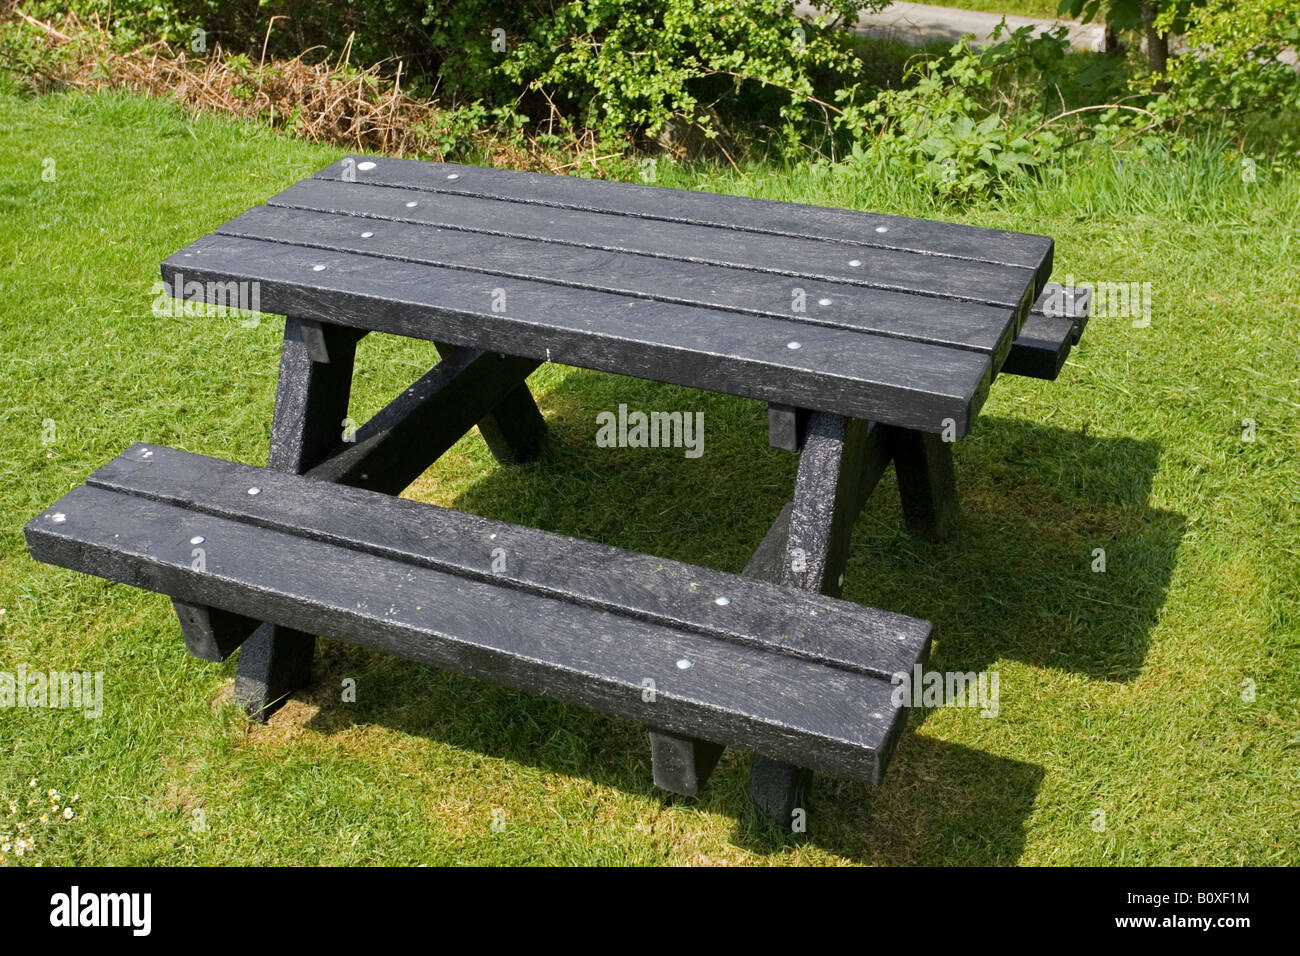 Black picnic bench made from plaswood Clywedog Reservoir Powys Wales UK - Stock Image